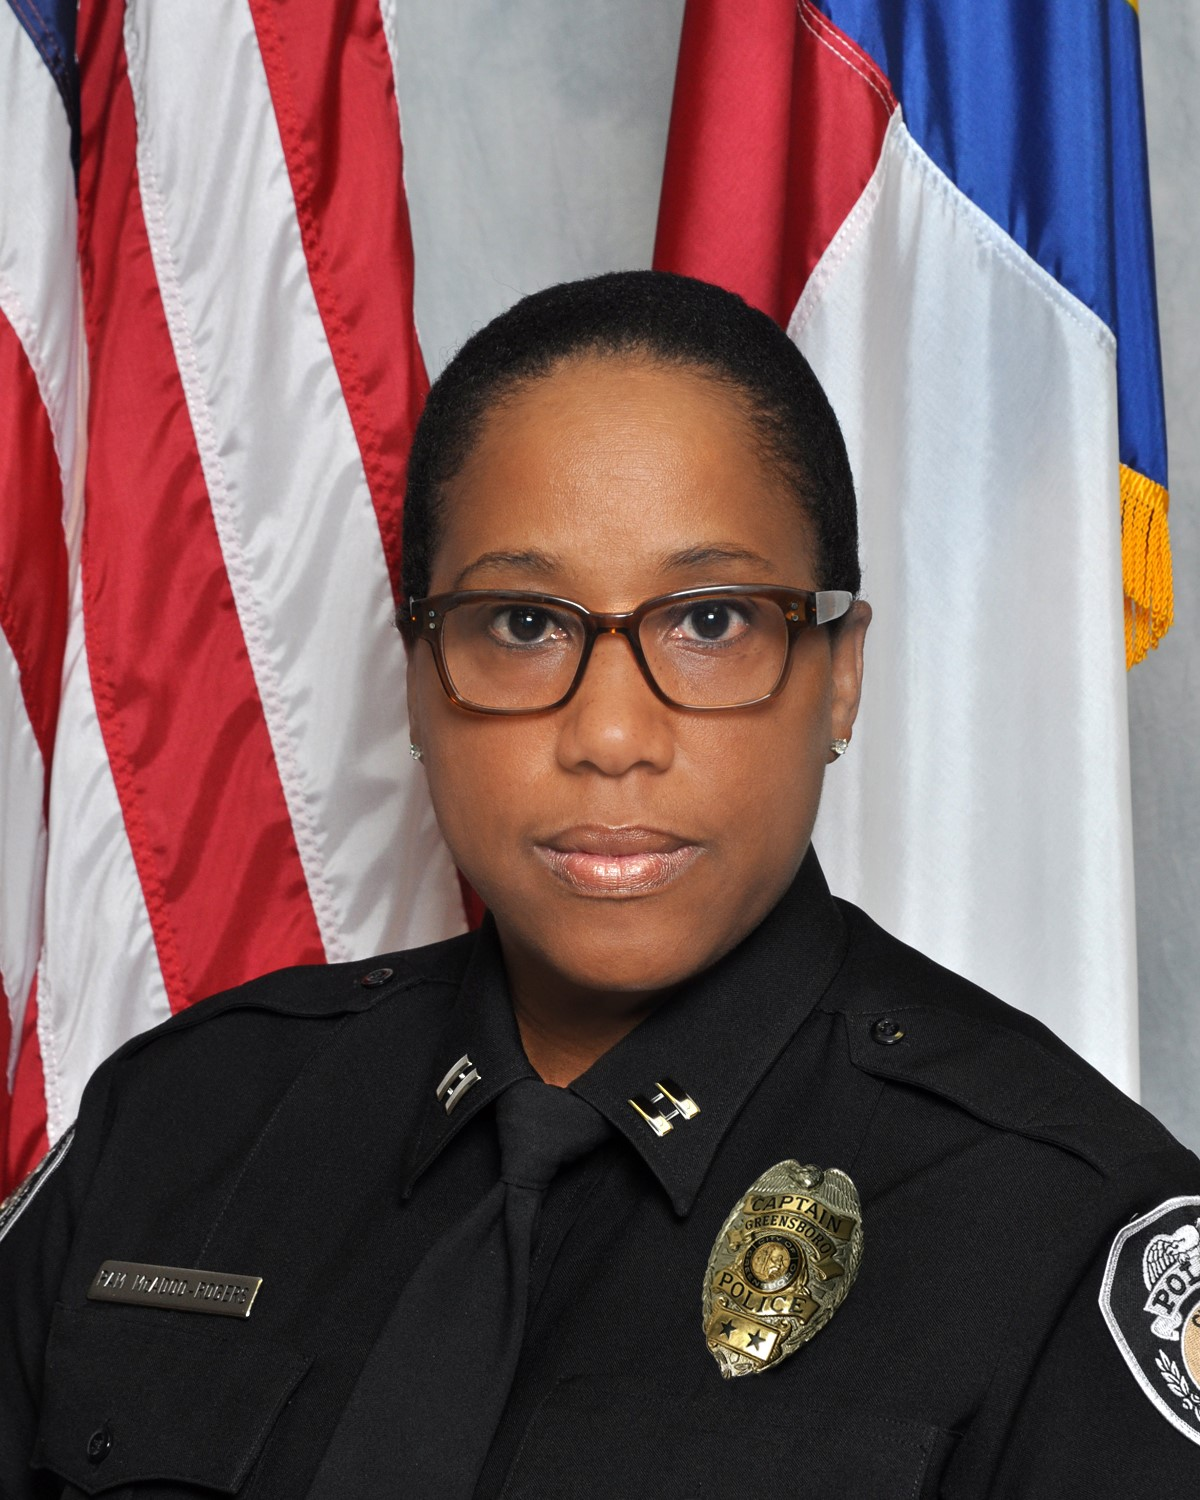 32-year veteran officer and now Captain of the Greensboro police force is a pillar of this North Carolina community.